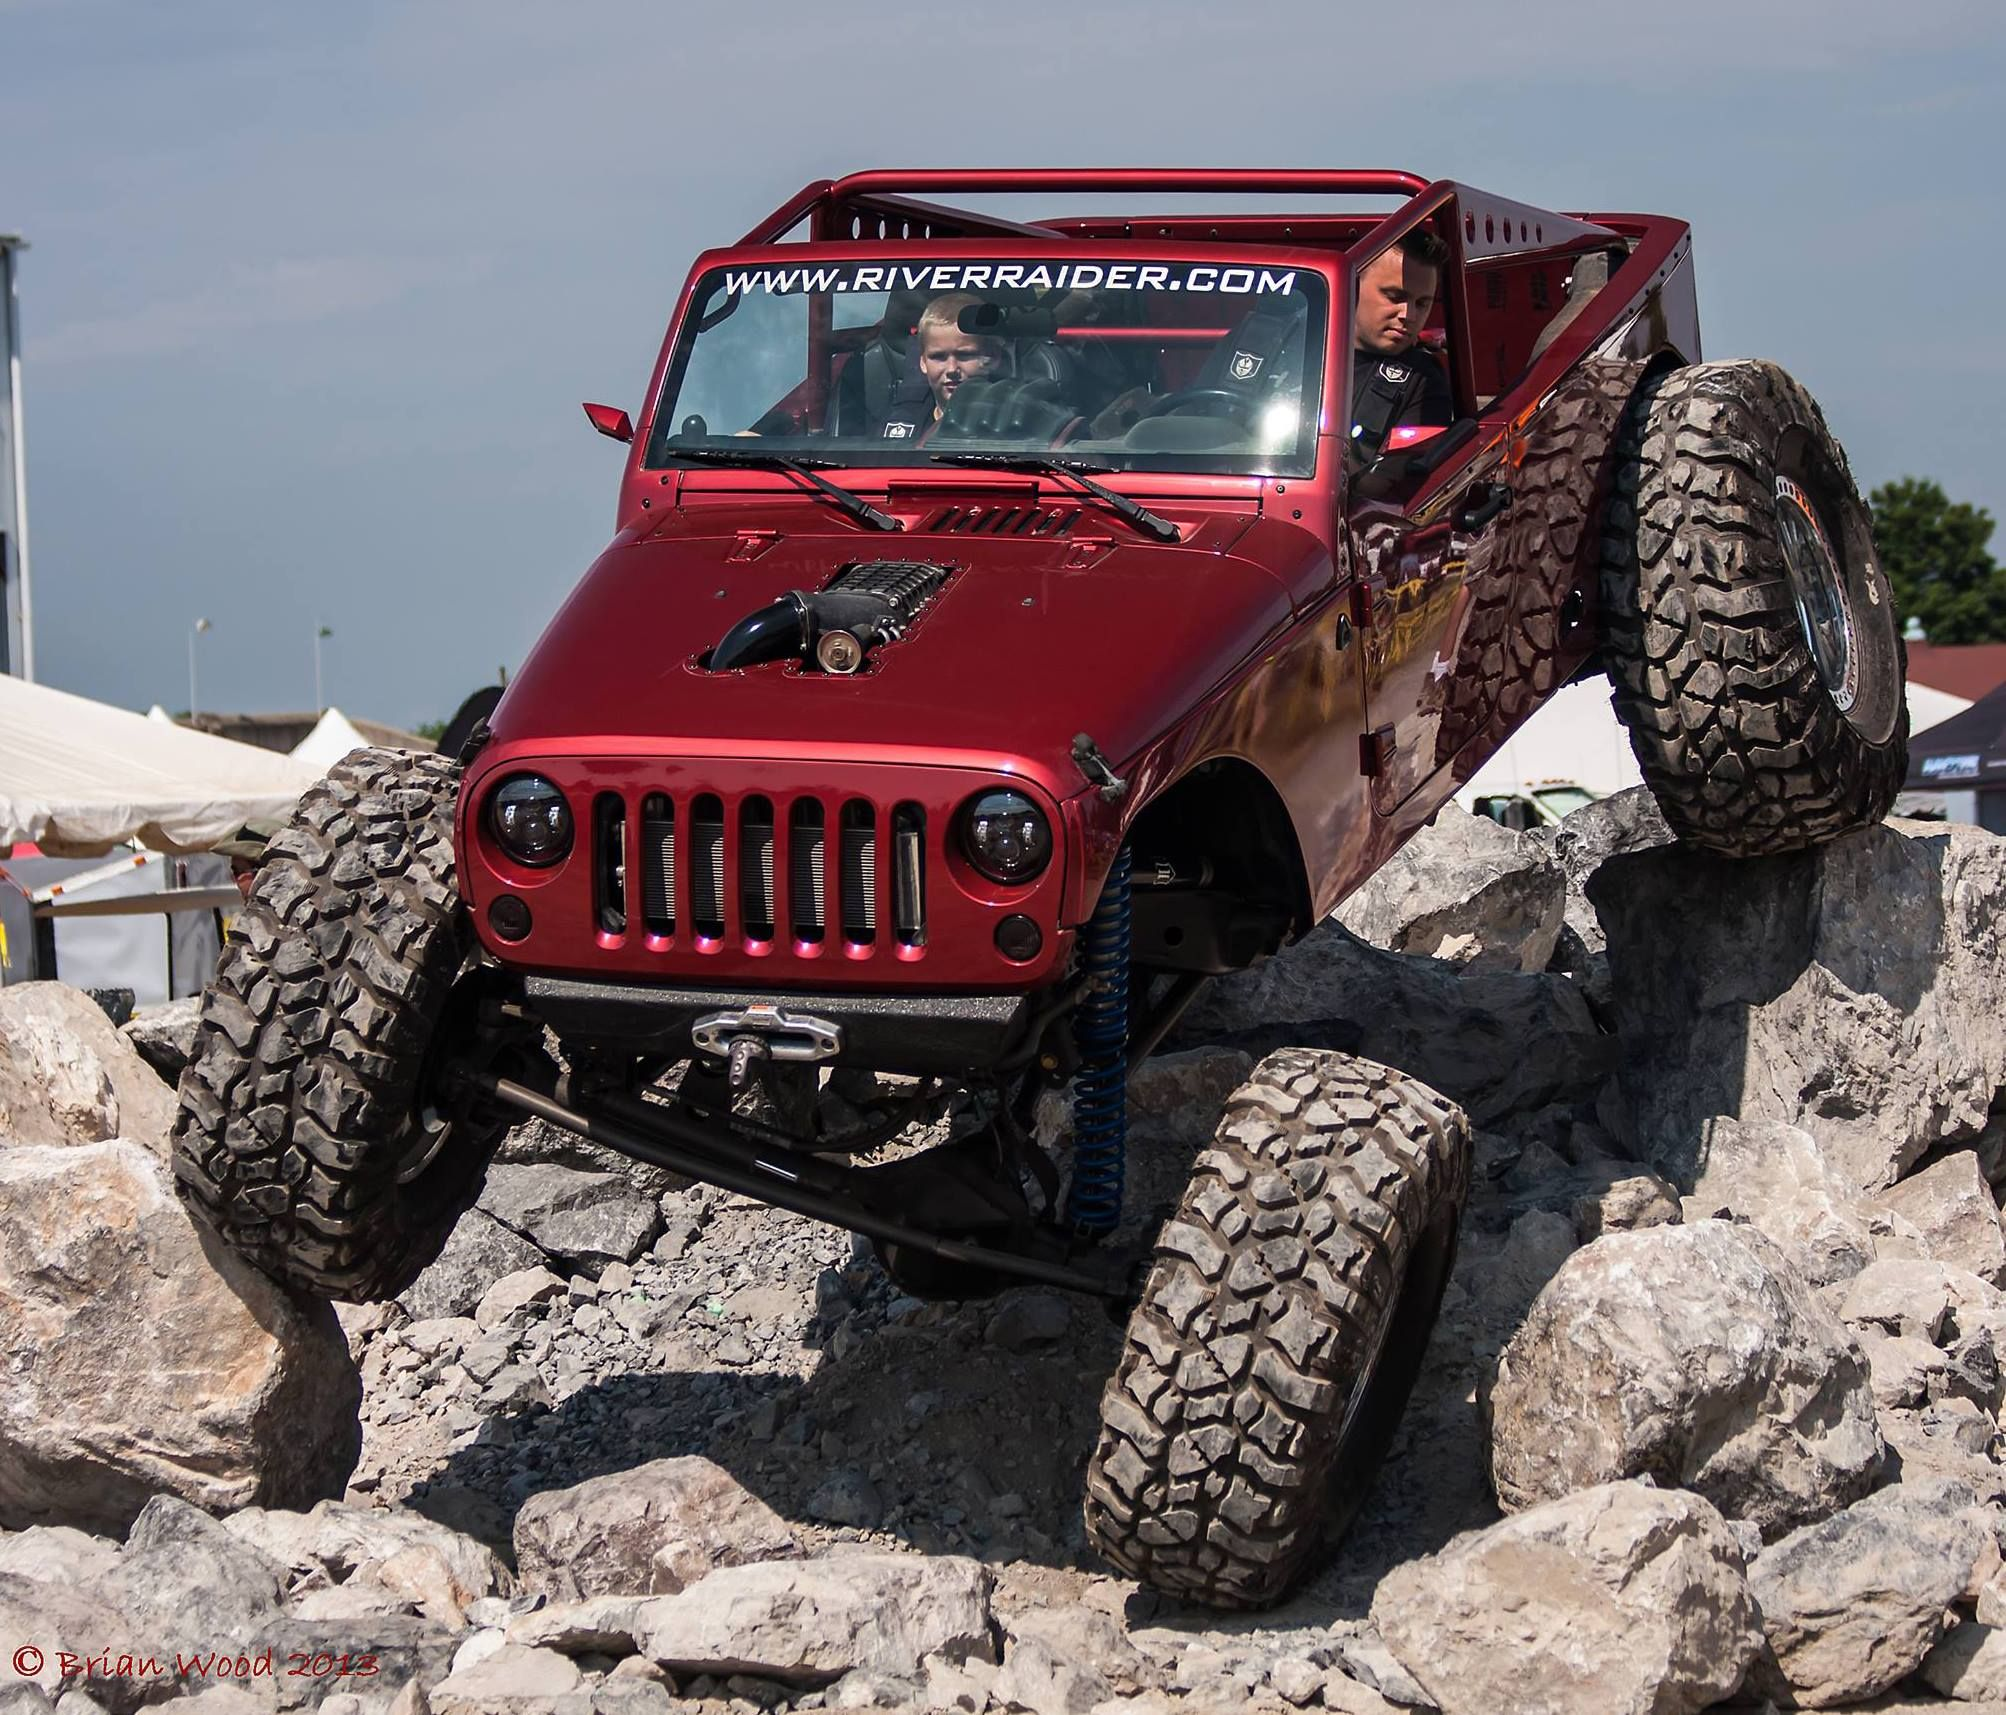 Hauk Knows Rocks Project Phoinix By Hauk Designs At The York Pa All Breeds Jeep Show Cool Jeeps Jeep Cars Jeep Wrangler Unlimited